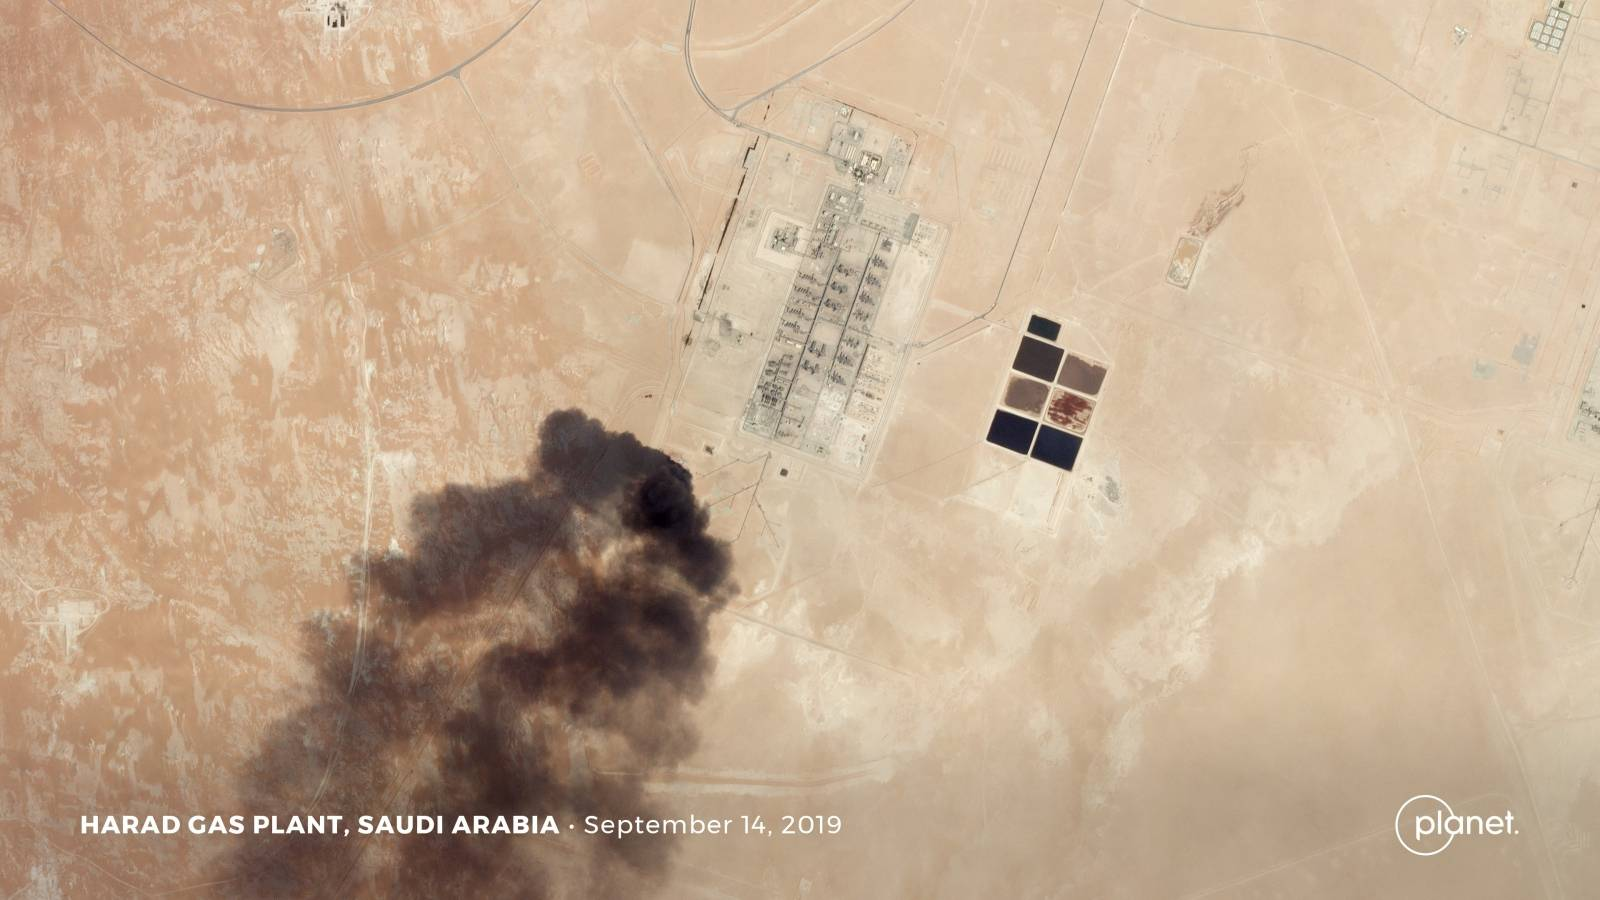 A satellite image shows an apparent drone strike on an Aramco oil facility in Harad